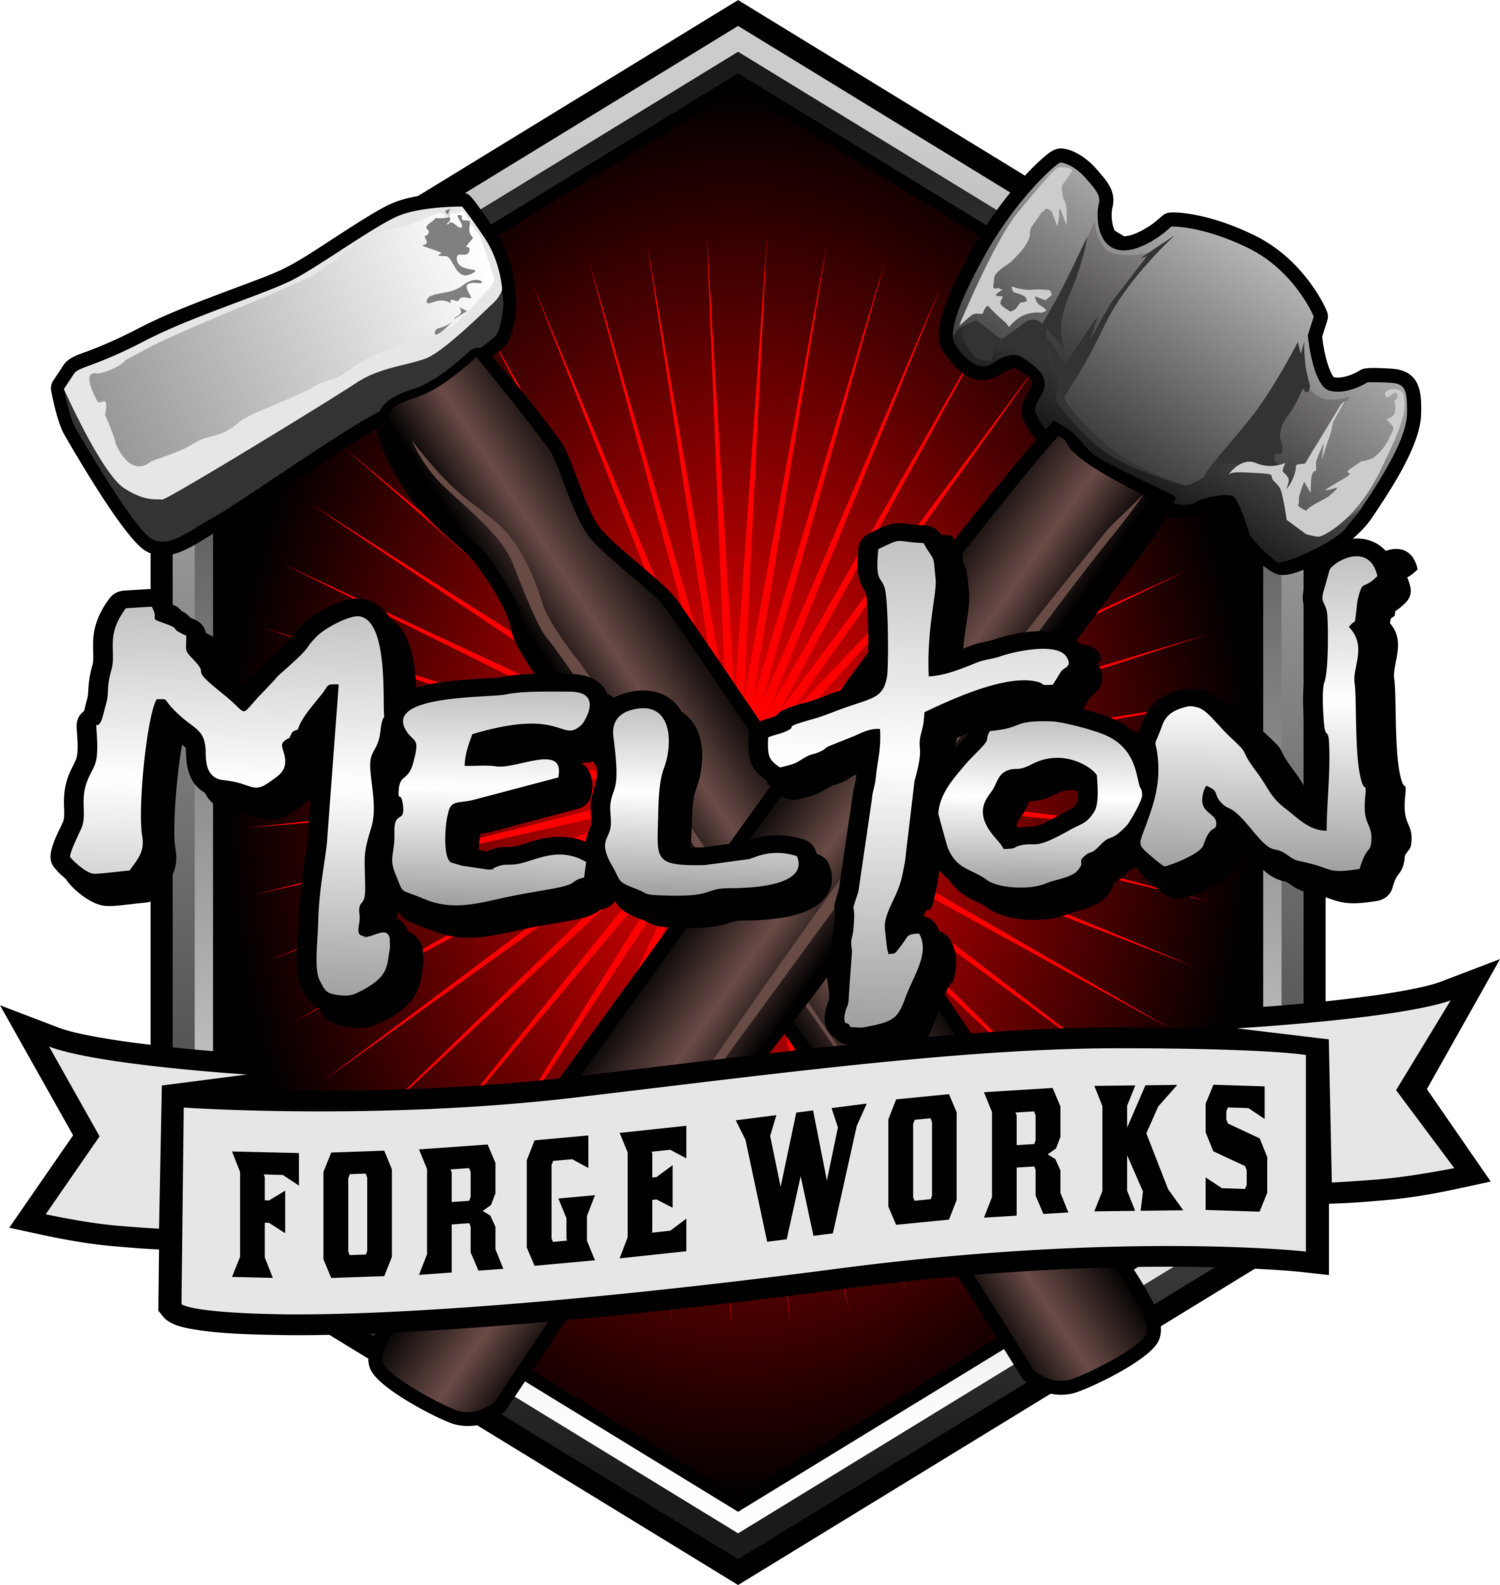 Melton Forge Works - DerekMelton.com